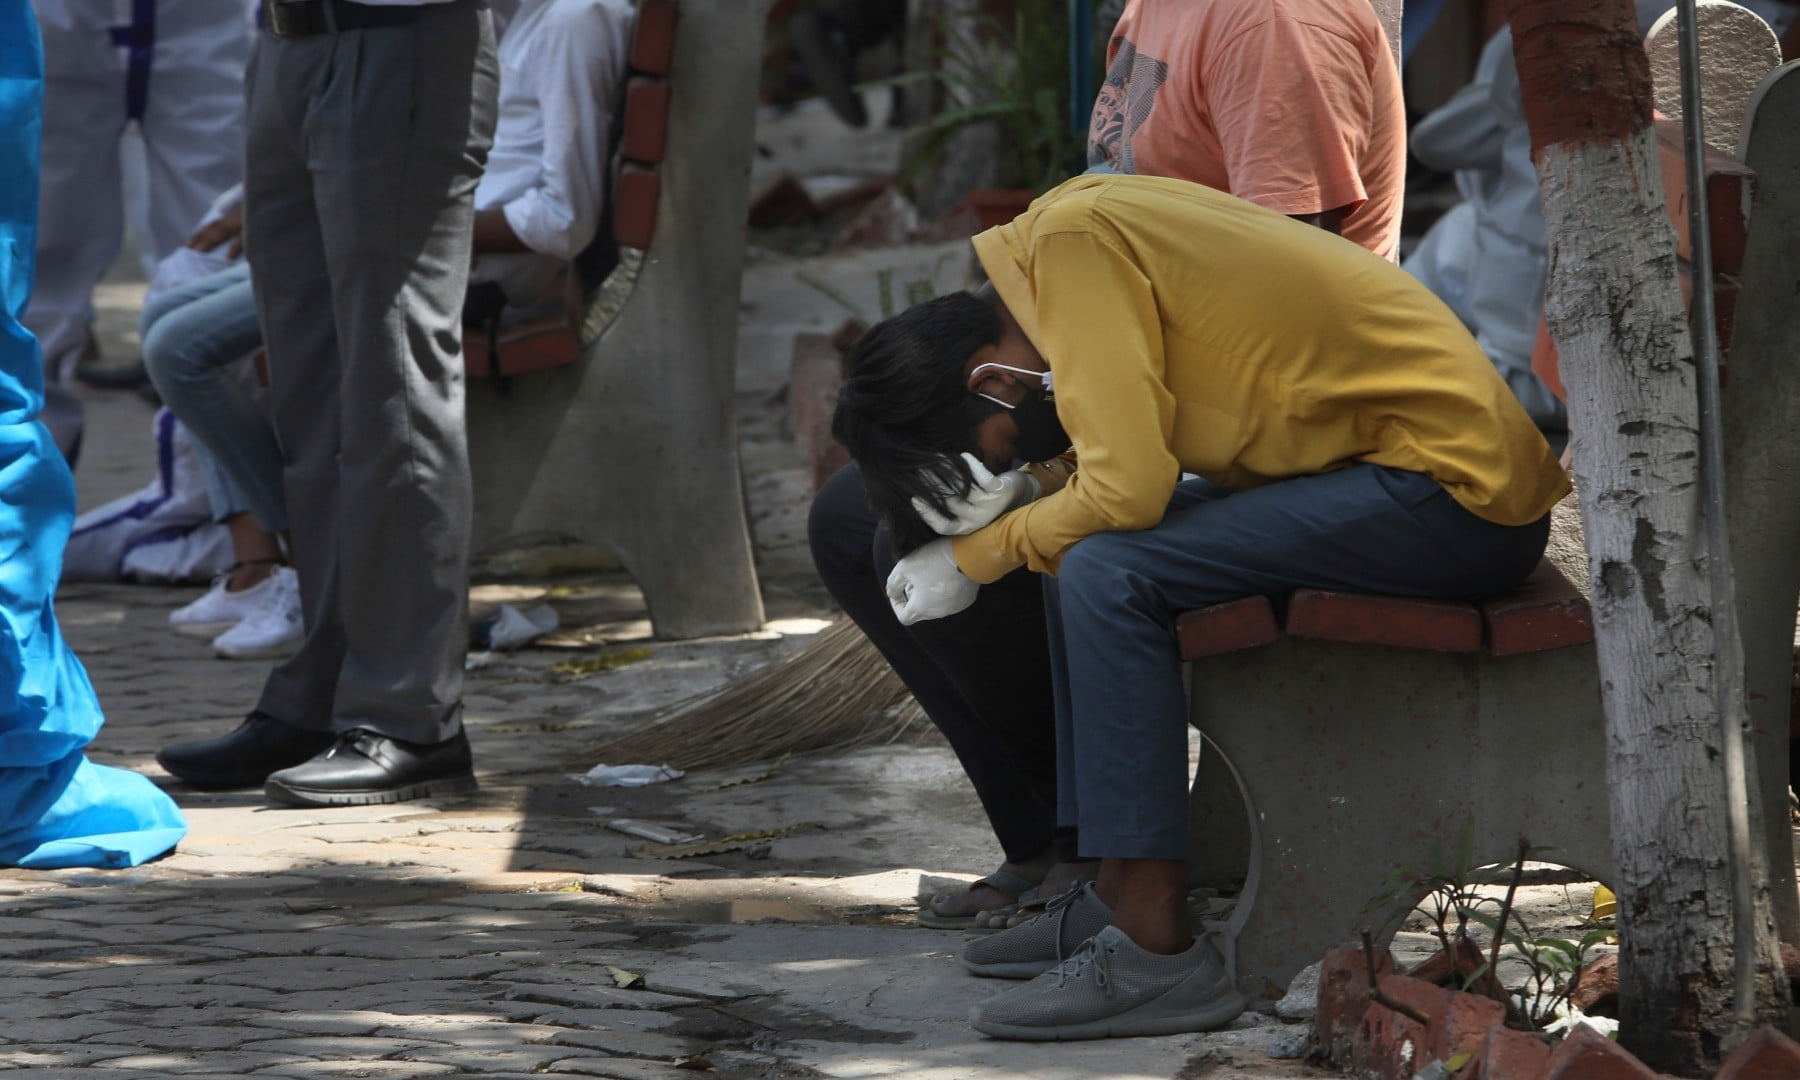 A relative of a person who died of Covid-19 reacts during cremation in New Delhi on April 19. — AP